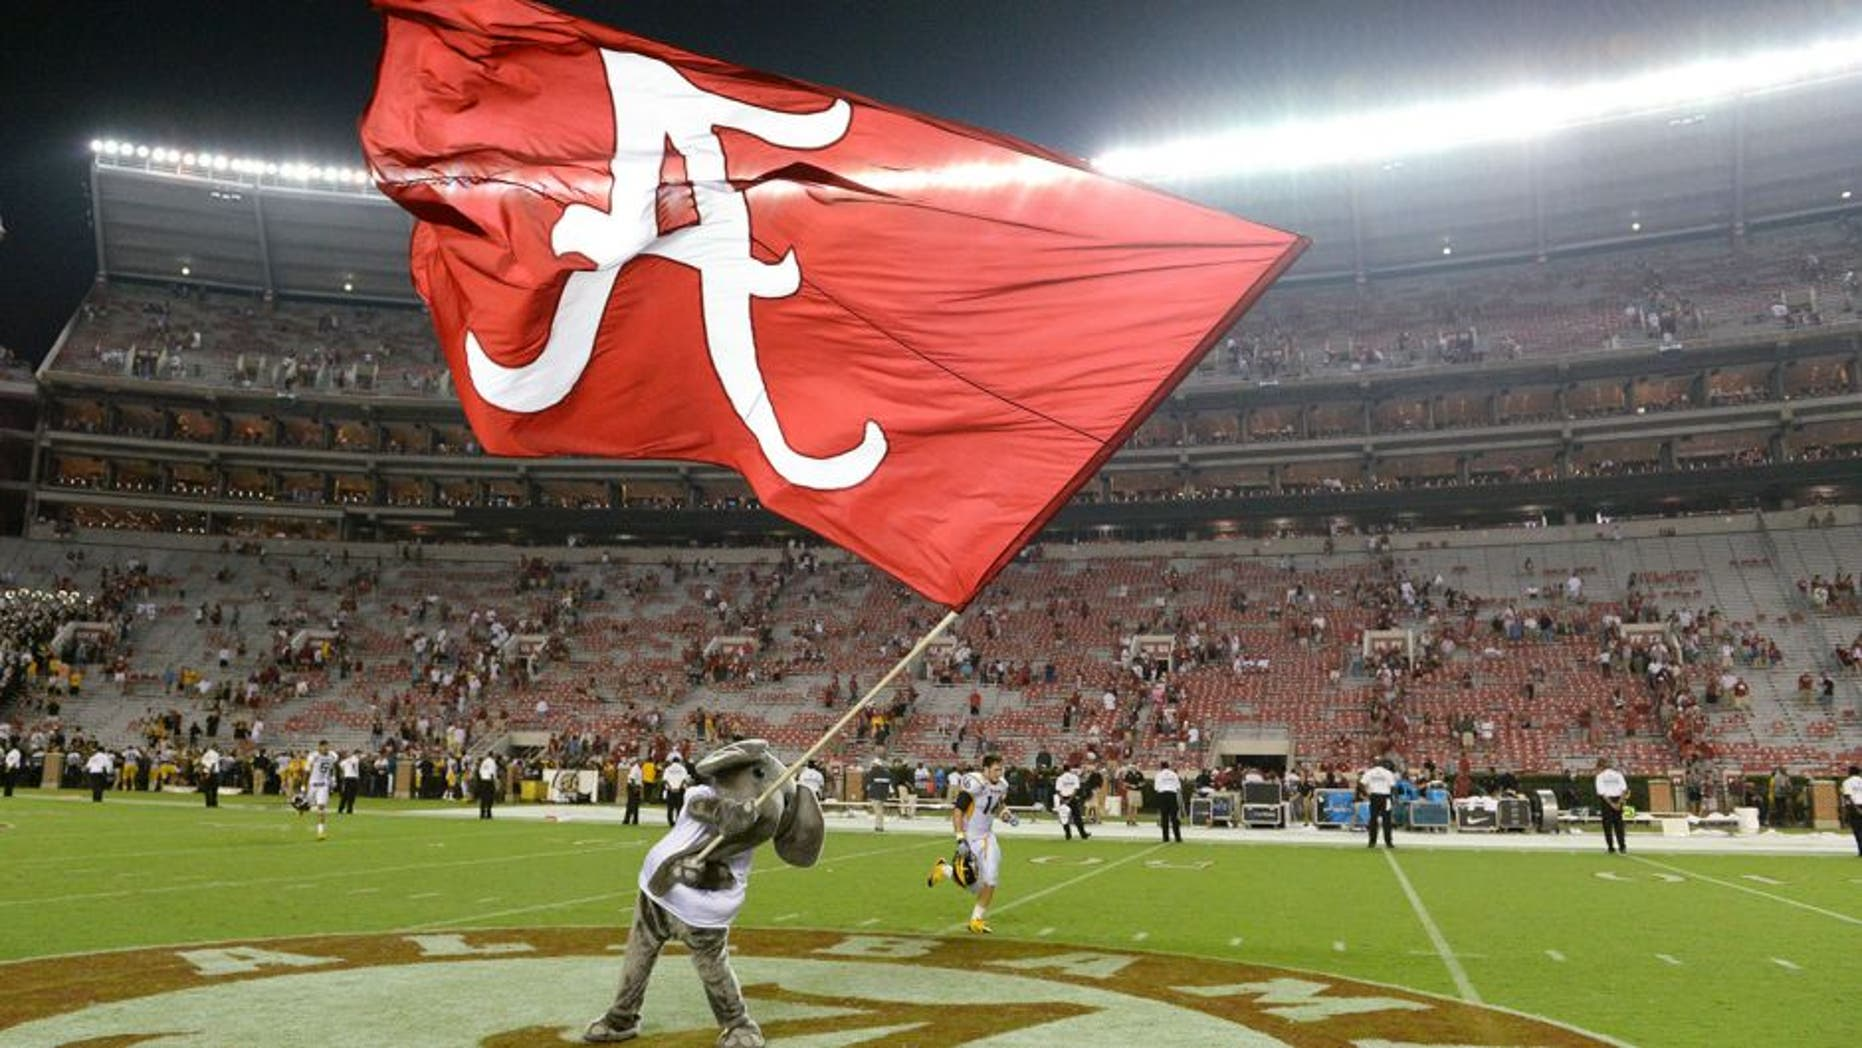 Sep 13, 2014; Tuscaloosa, AL, USA; Alabama Crimson Tide mascot Big Al waves the Alabama flag following their 52-12 victory against the Southern Miss Golden Eagles at Bryant-Denny Stadium. Mandatory Credit: John David Mercer-USA TODAY Sports